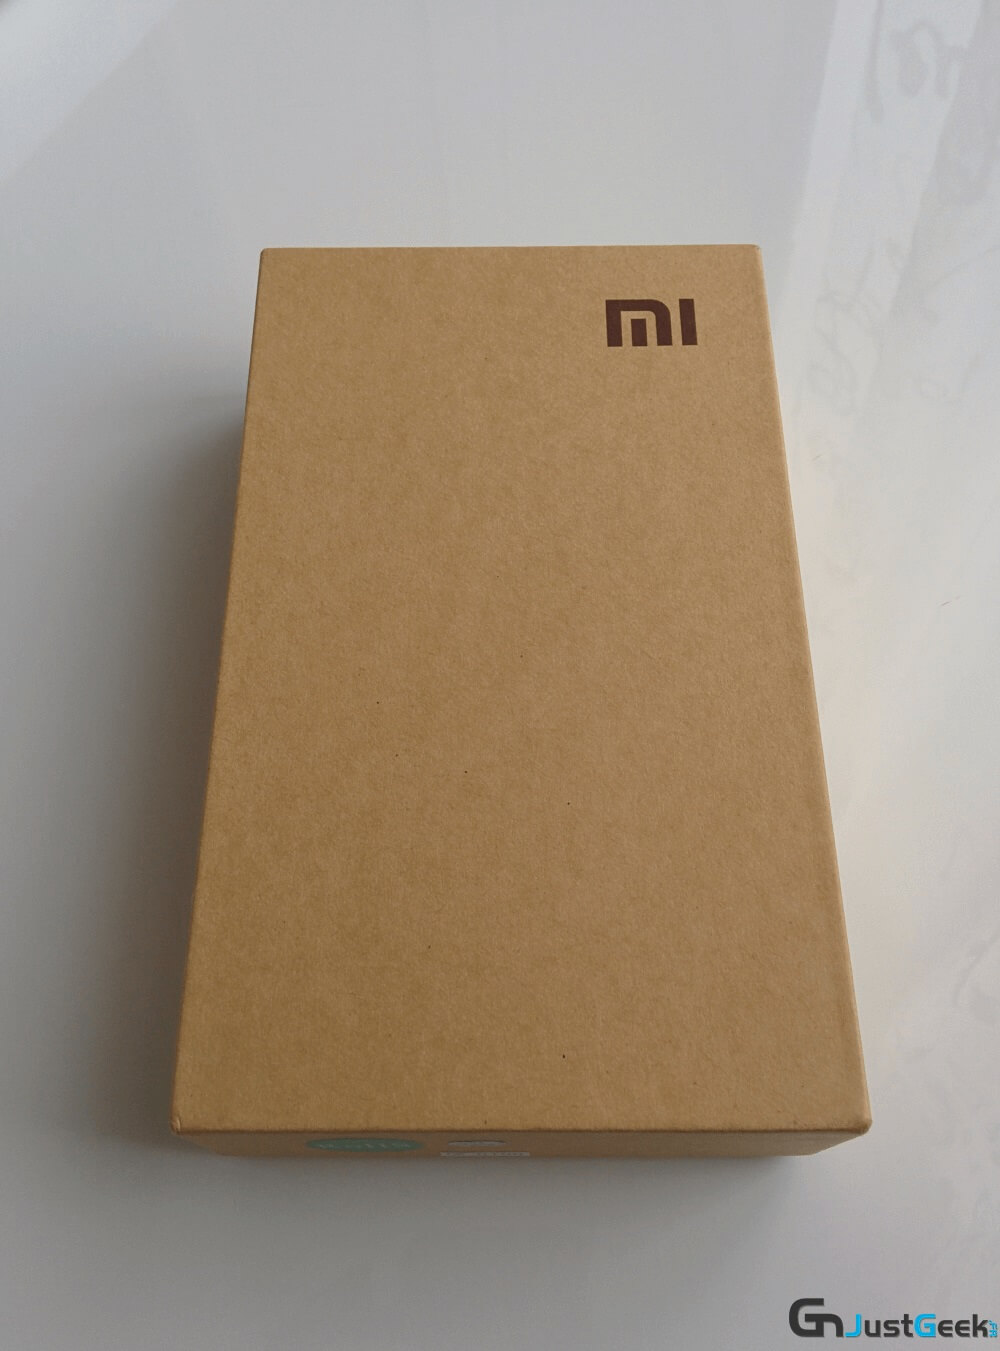 xiaomi_redmi_note_2_photo_test_1